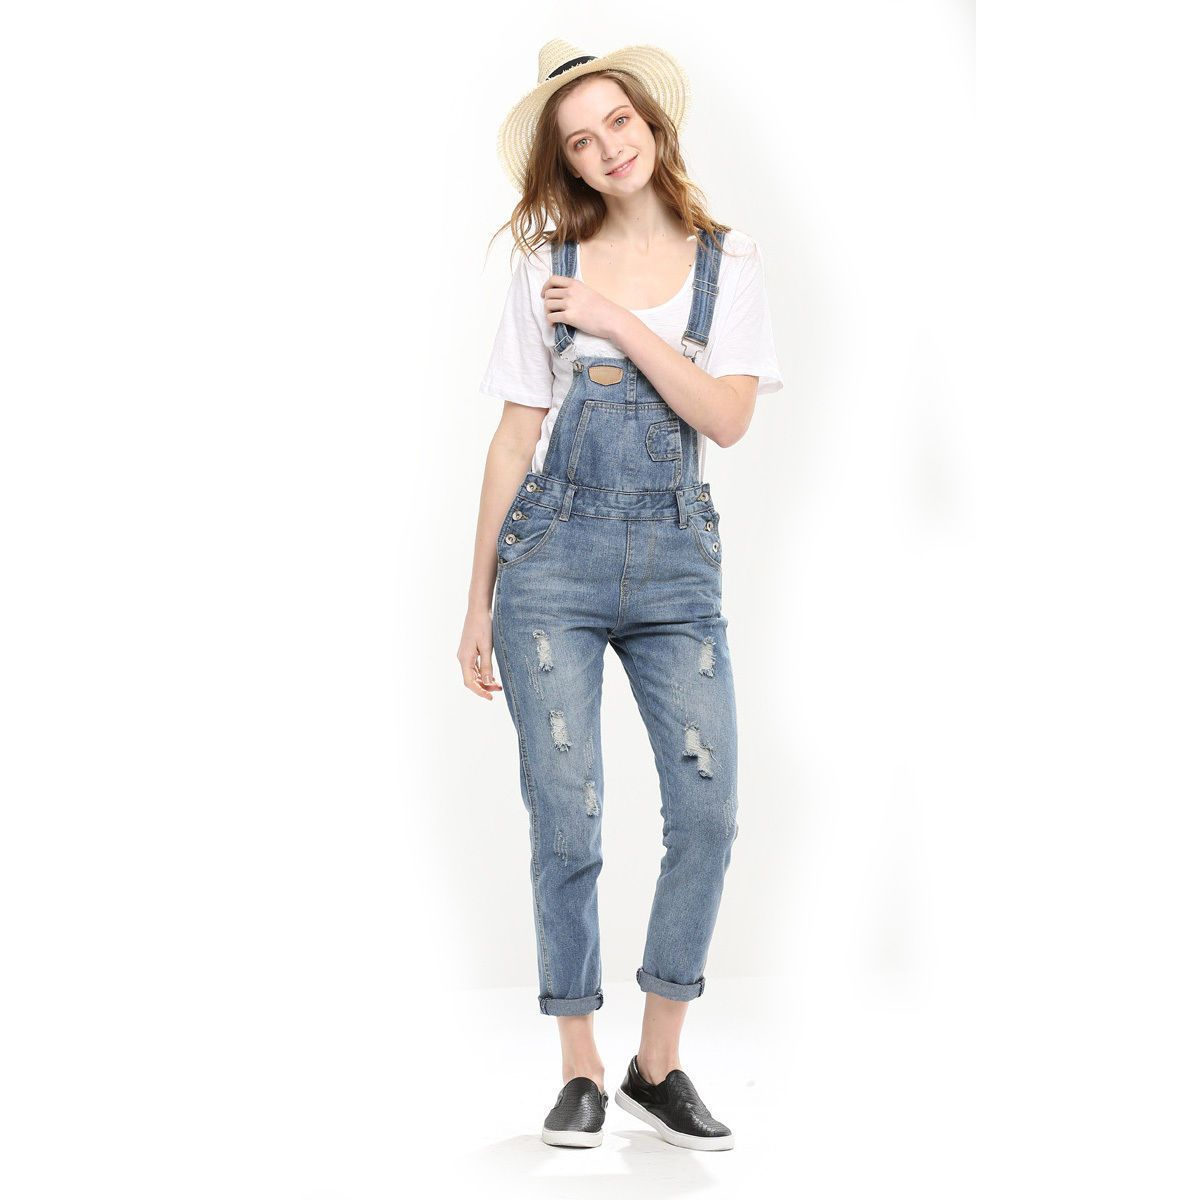 Women's Clothing 100% True Casual Womens Spaghetti Strap Overalls Jumpsuits Sleeveless Playsuit Jeans Denim Loose Long Wide Pants Rompers Trousers Hot Strong Packing